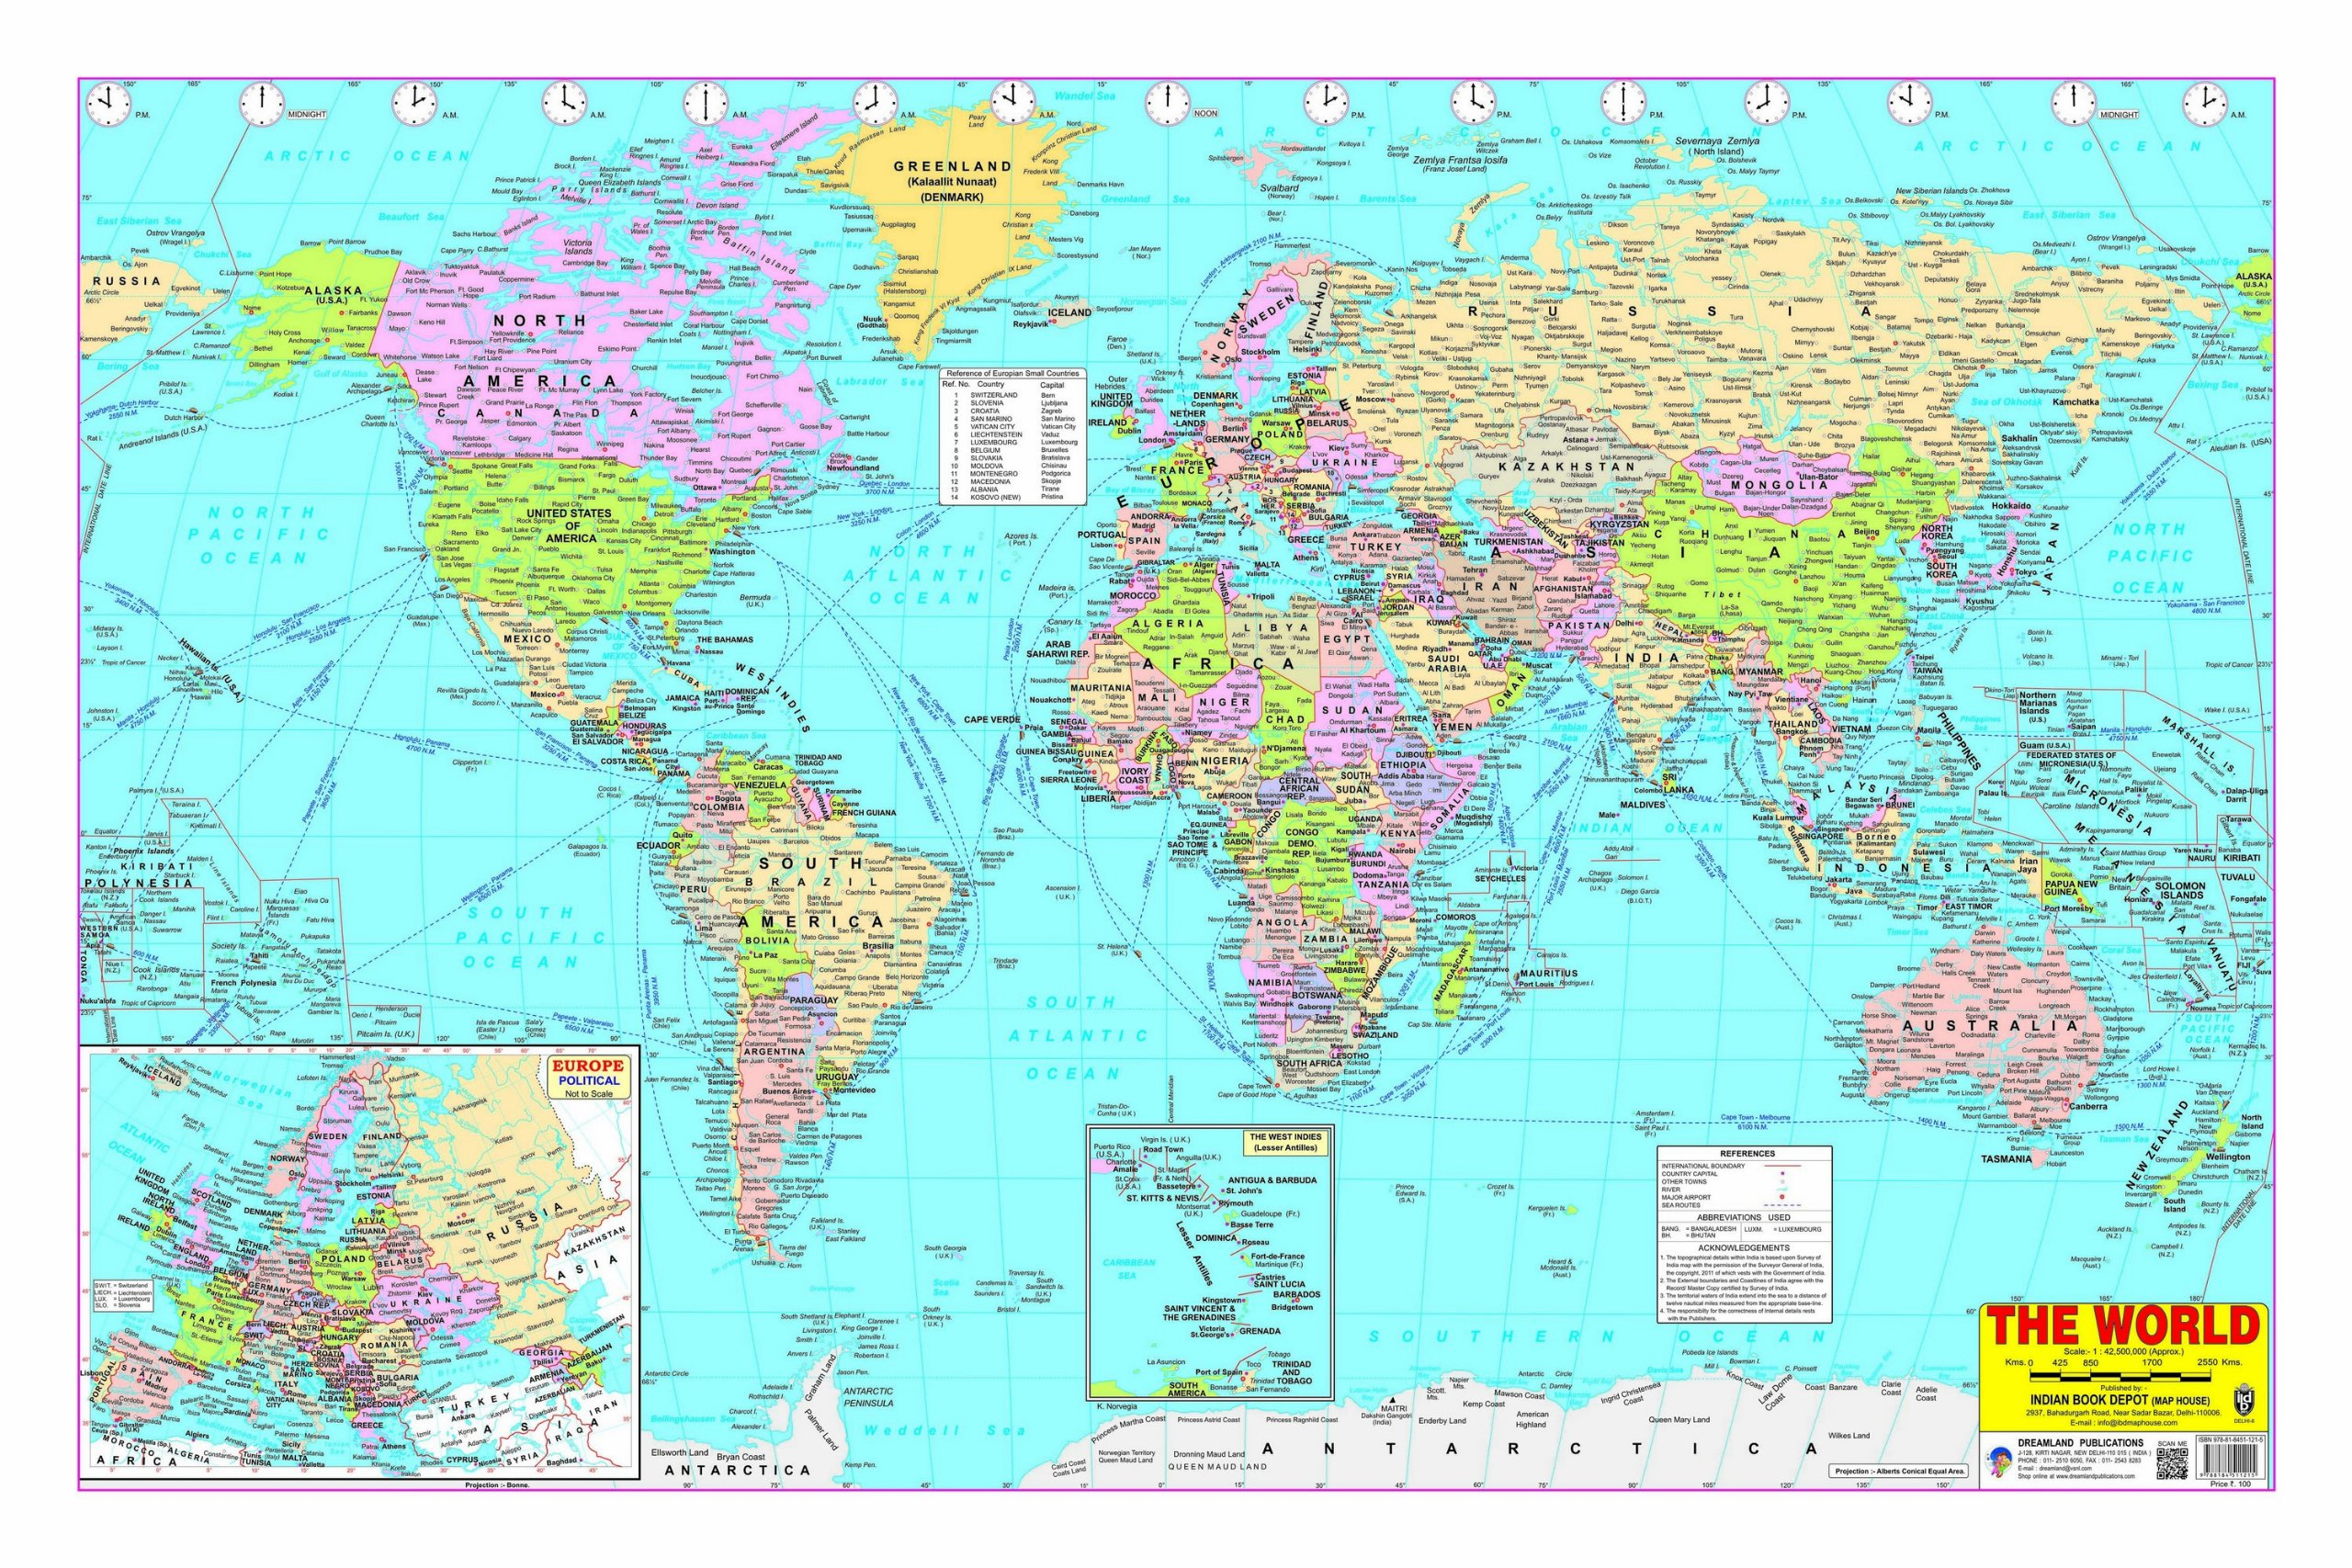 Full Map Of The World.Buy World Map Book Online At Low Prices In India World Map Reviews